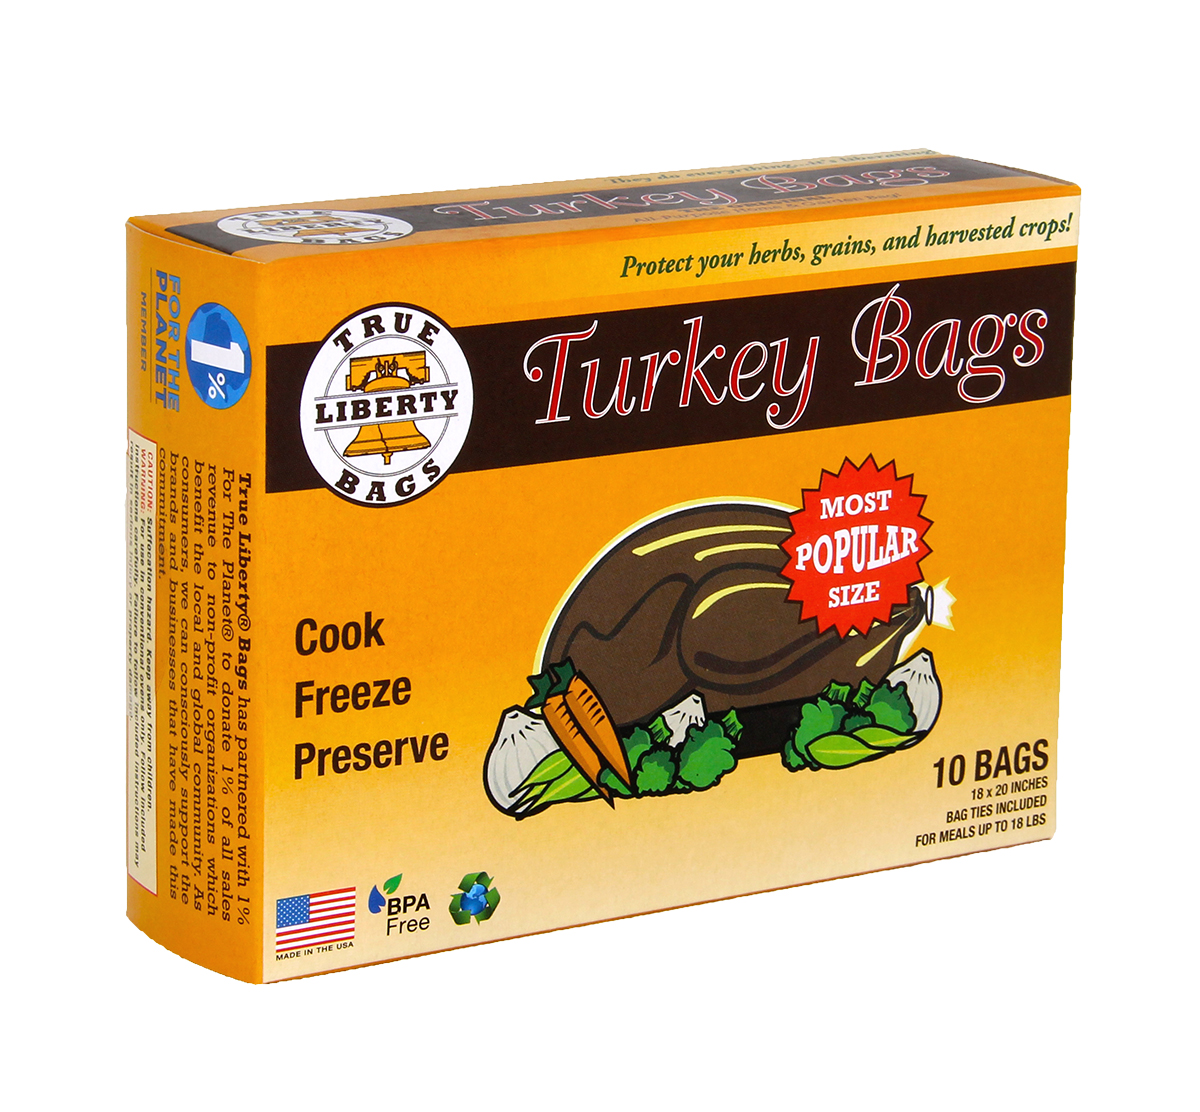 True Liberty Turkey Bags - 10 PACK